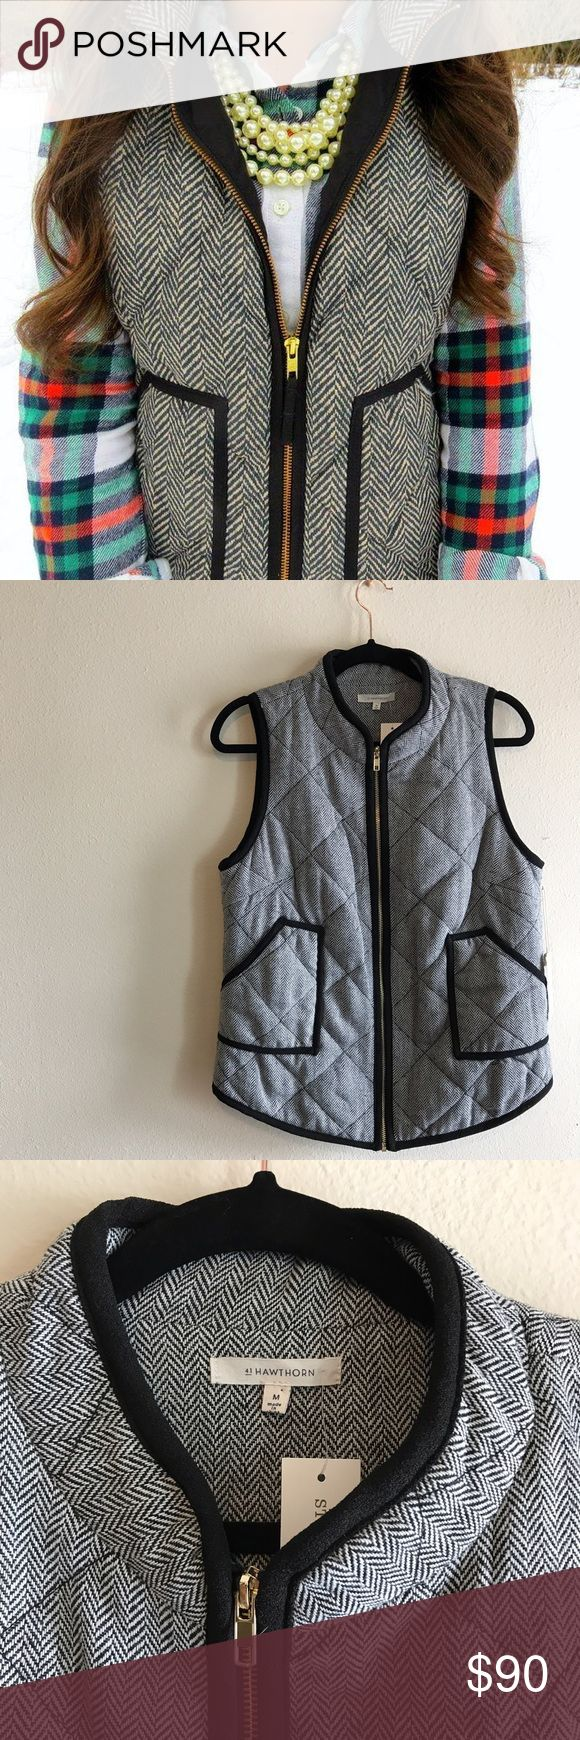 Herringbone Vest Gorgeous vest from 41 Hawthorn. NWT never been worn. No holes or stains. Exact look a like from the J Crew Herringbone Vest. Pocket detail & gold zipper. Wear it multiple ways, super versatile. Can be easily dressed up or down. Bought from an online clothing site called stitch fix and never got around to wearing it. Bundle to save more  41 Hawthorn Jackets & Coats Vests